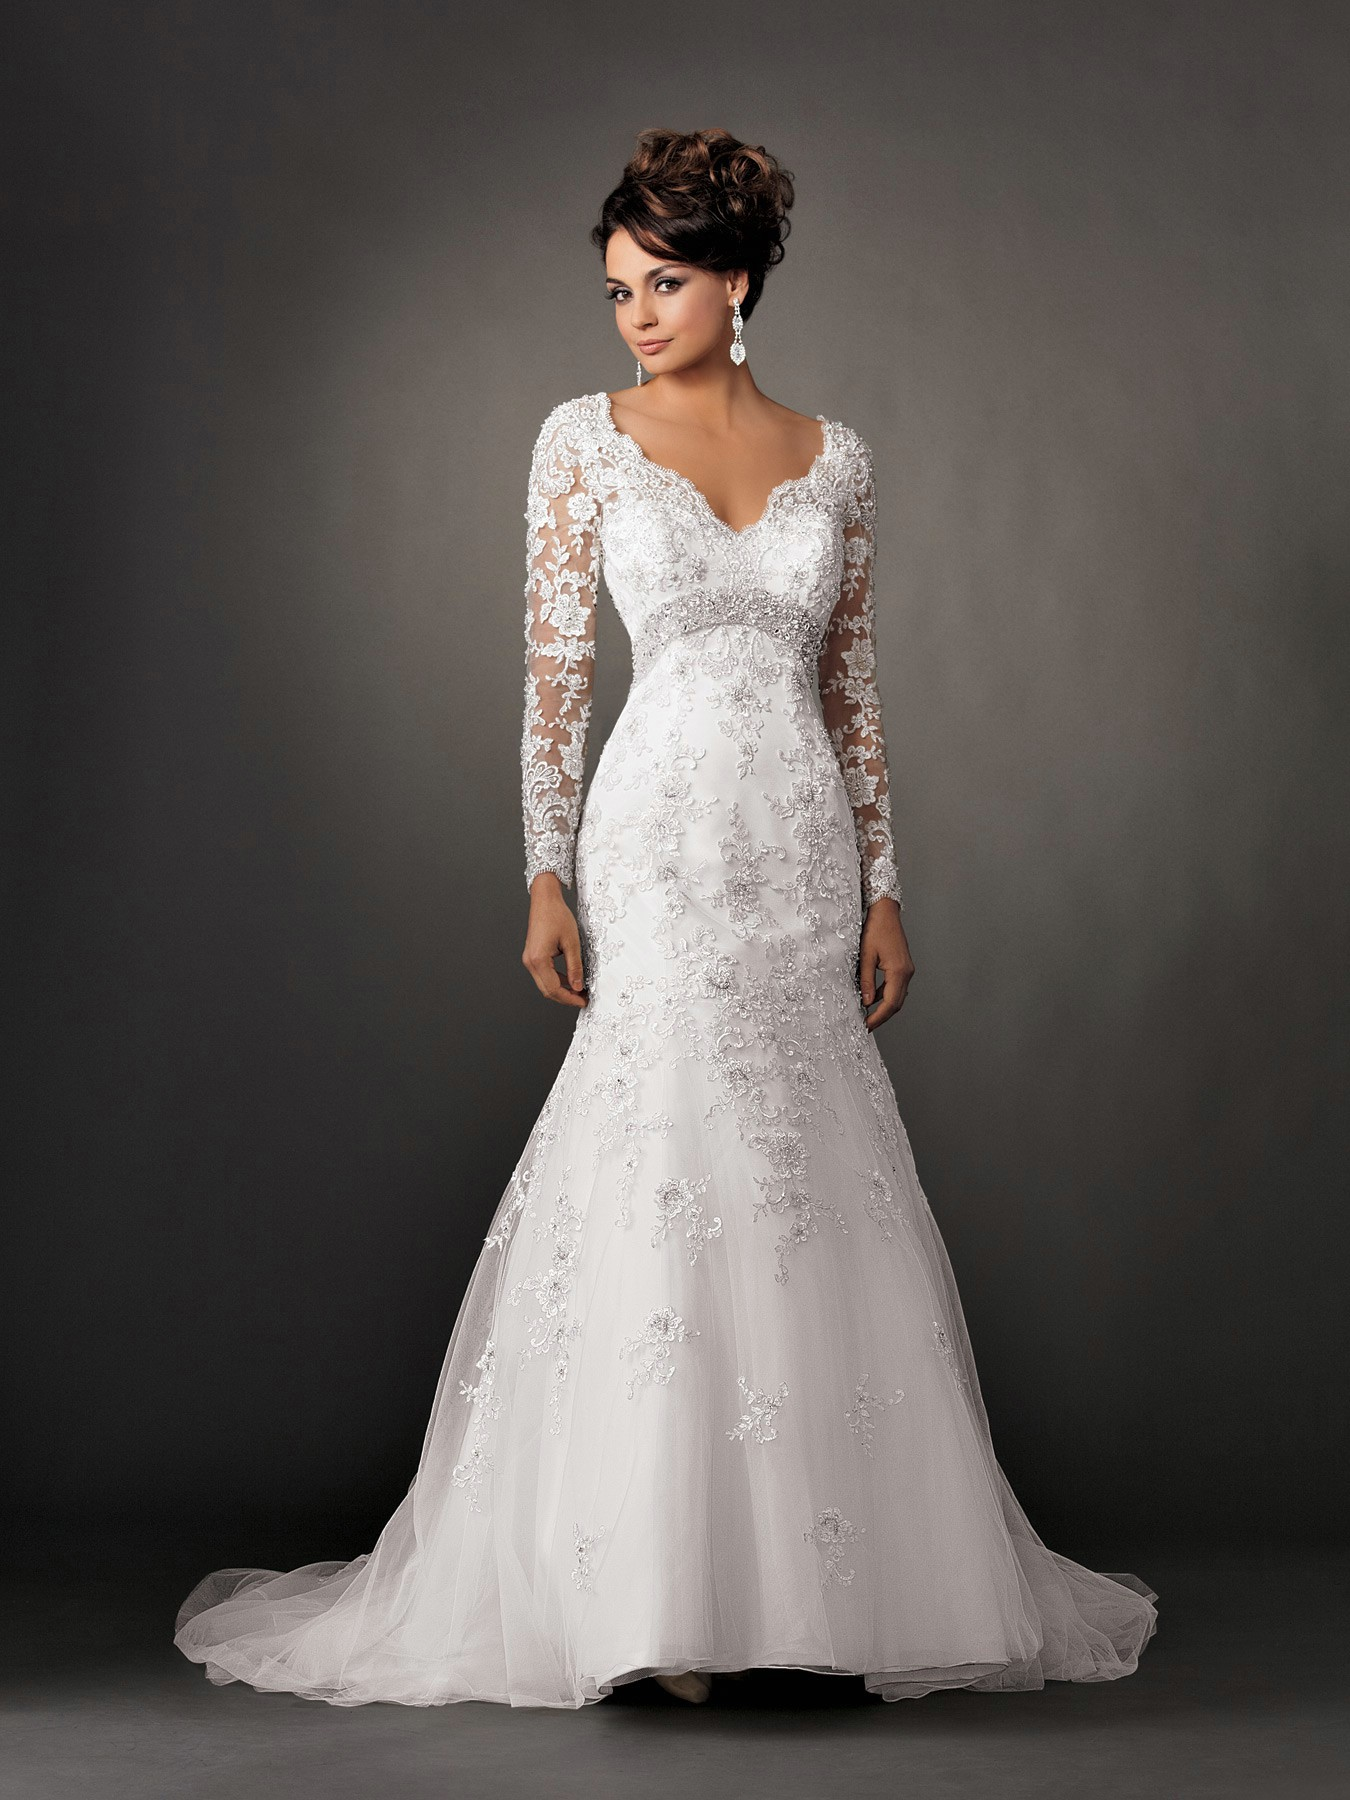 fall lace wedding dress with sleeves sangmaestro With lace wedding dresses with sleeves